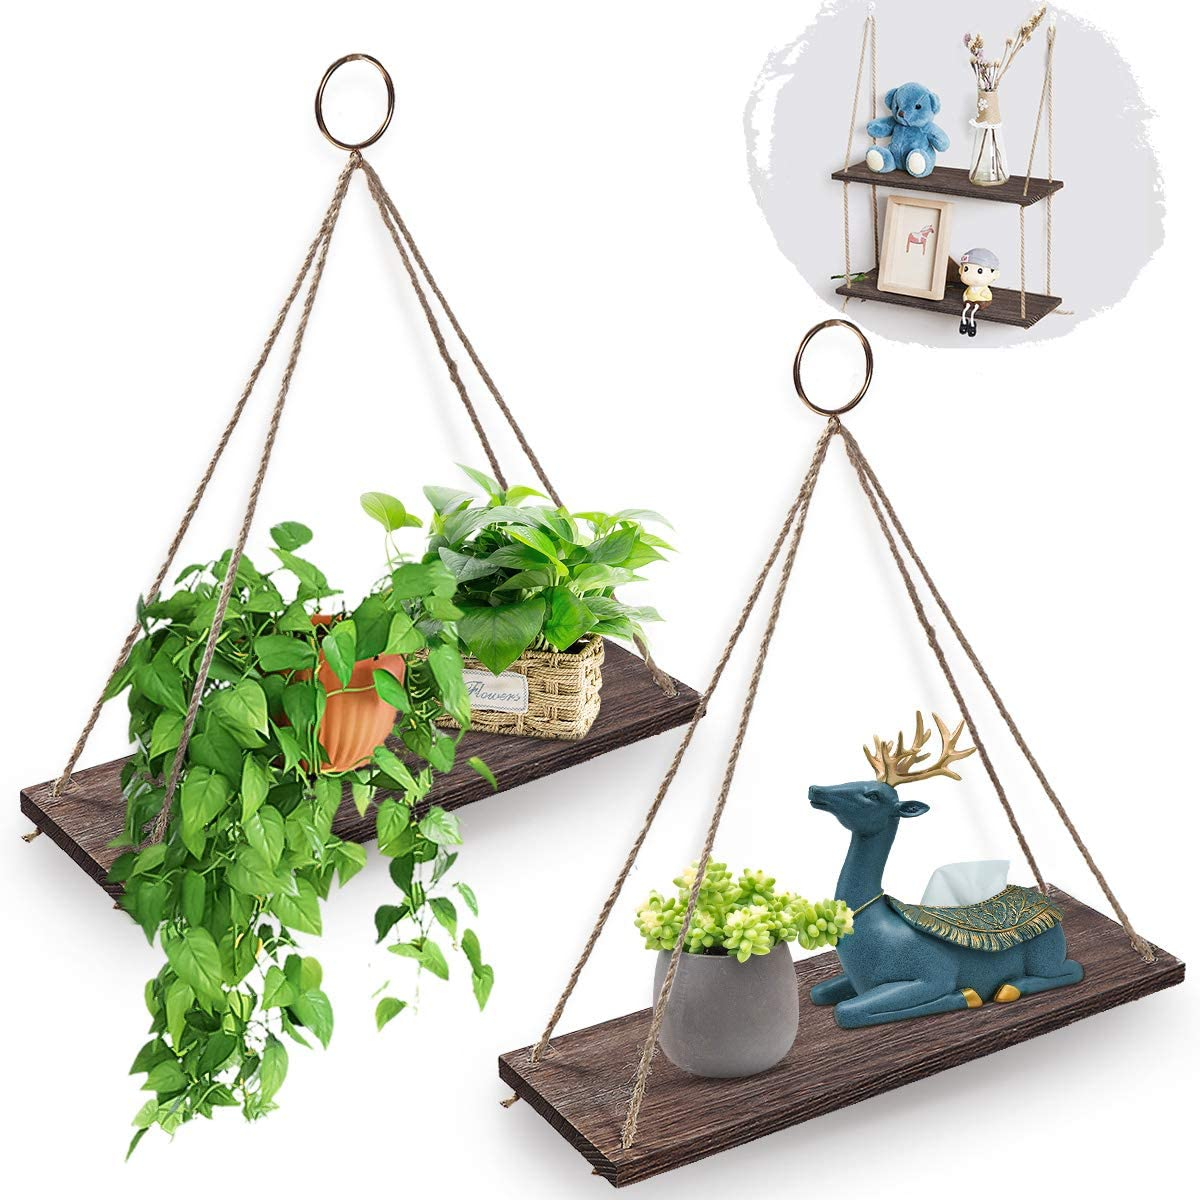 Agsivo Wooden Wall Shelf with Rope